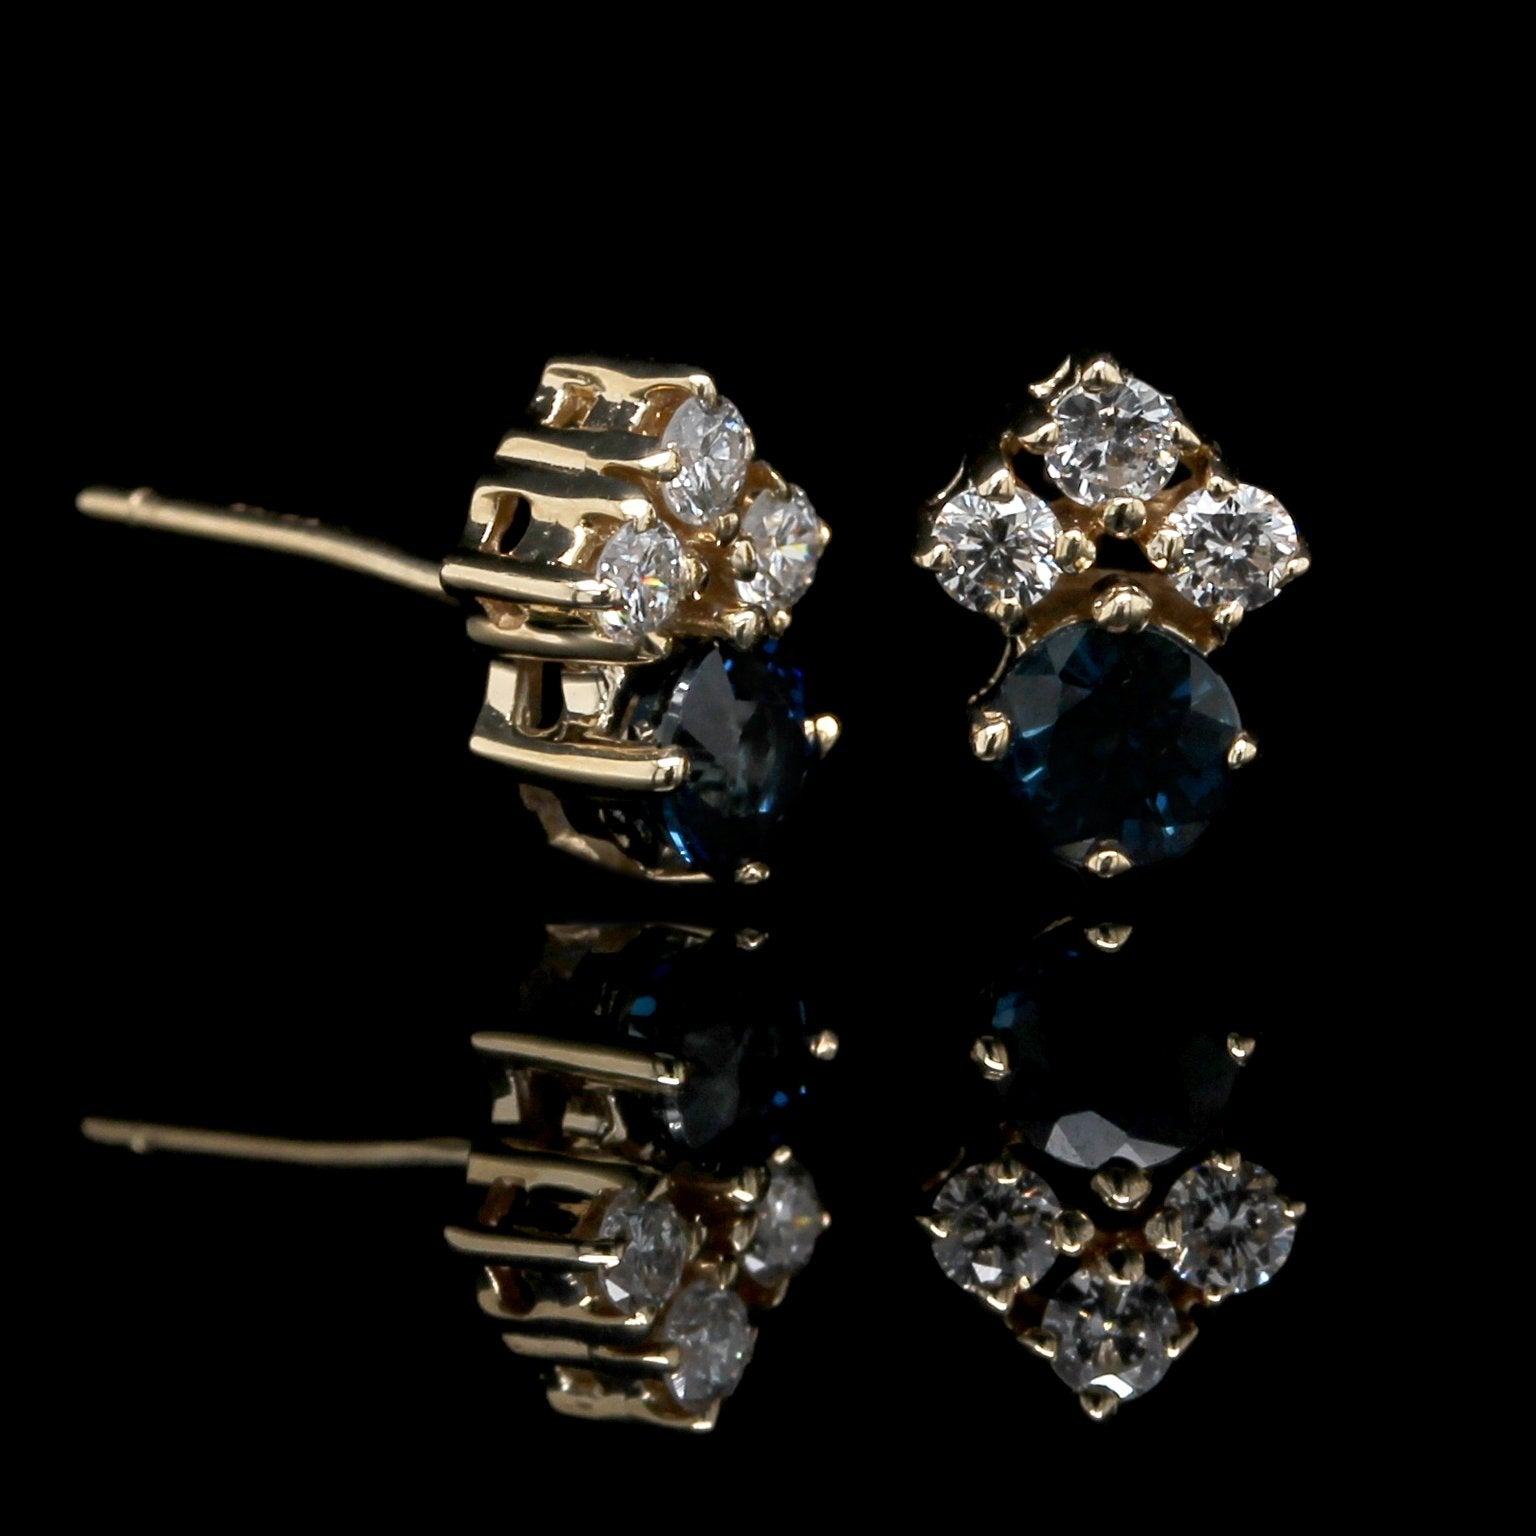 14K Yellow Gold Estate Sapphire and Diamond Earrings